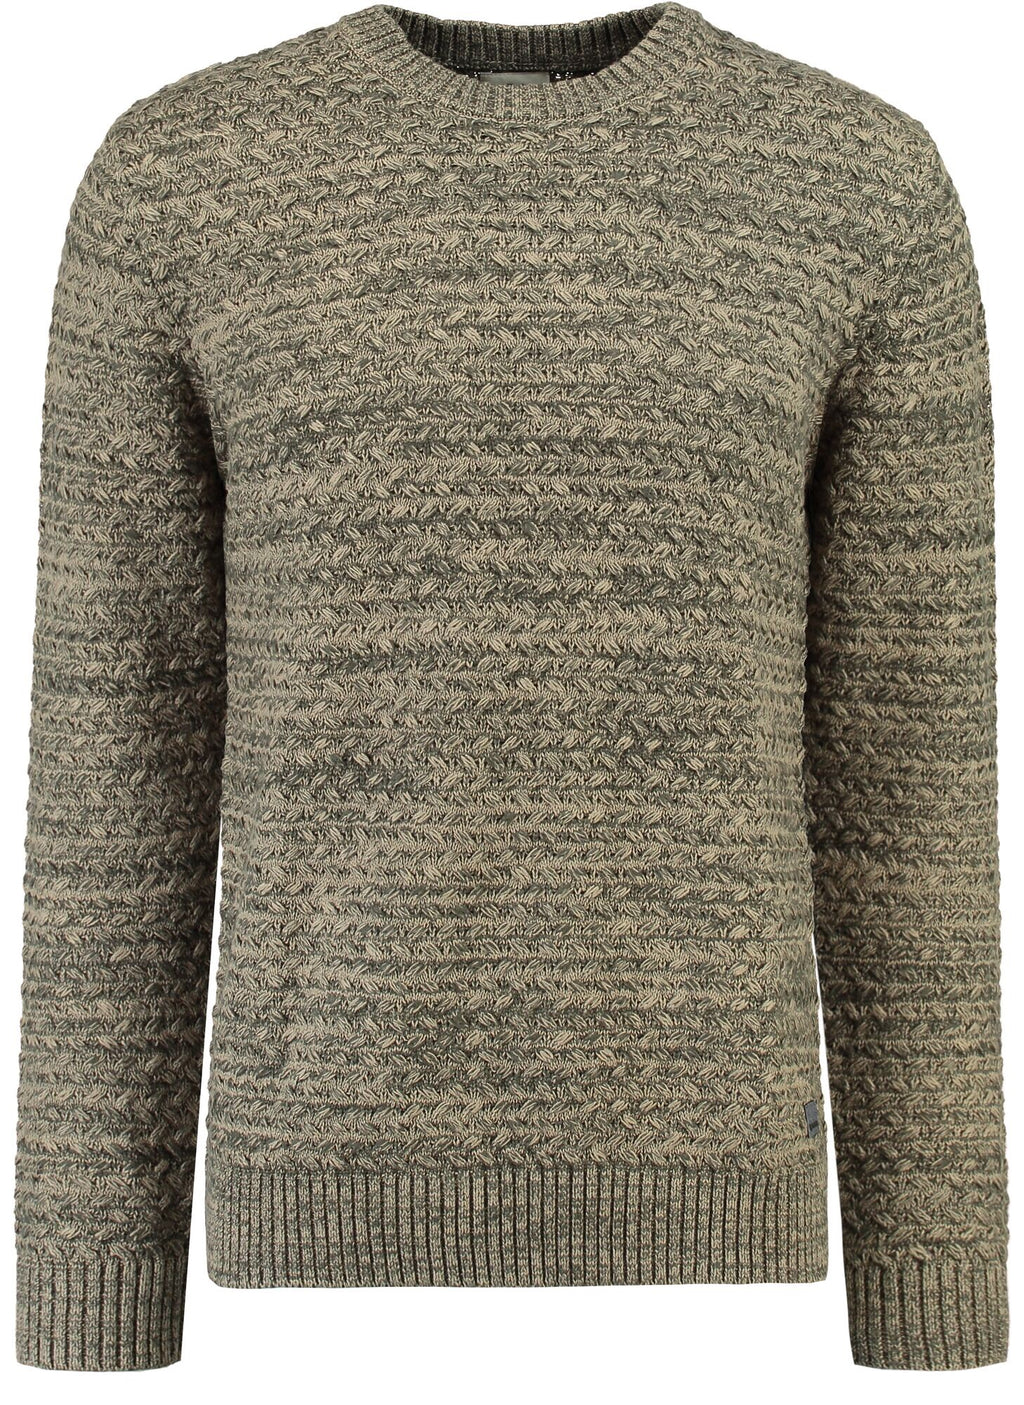 Garcia Men's Knitted Jumper - LAST SIZES REDUCED!!